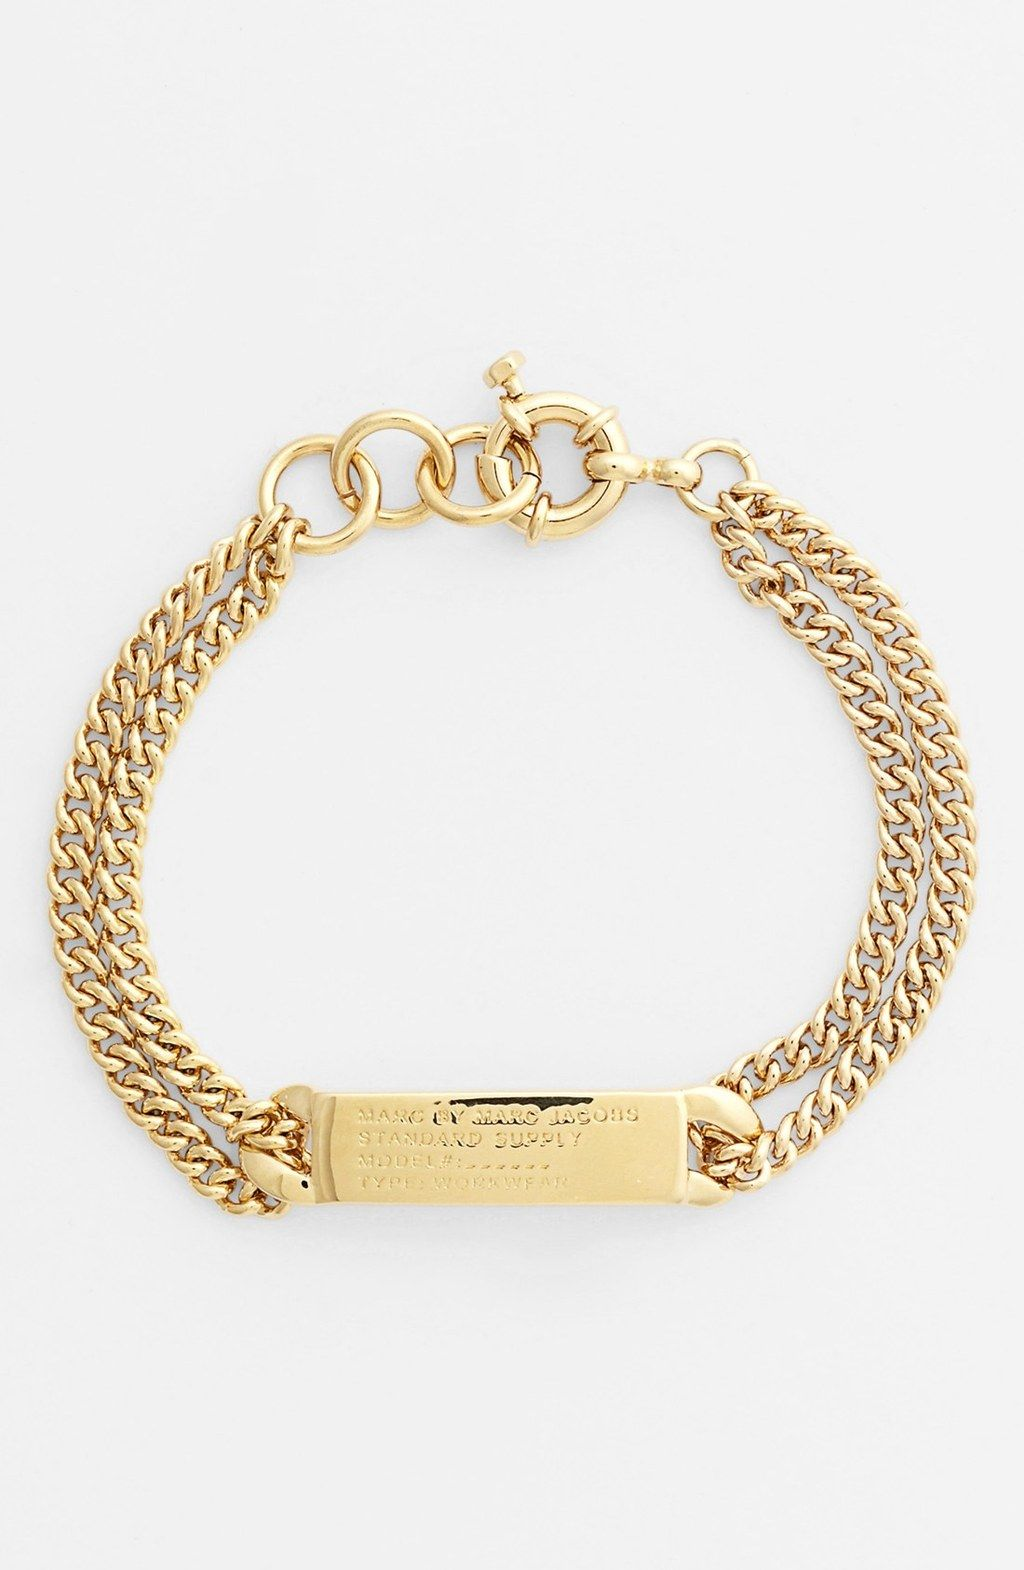 Marc by Marc Jacobs Gold Standard Supply ID Bracelet My Birthday